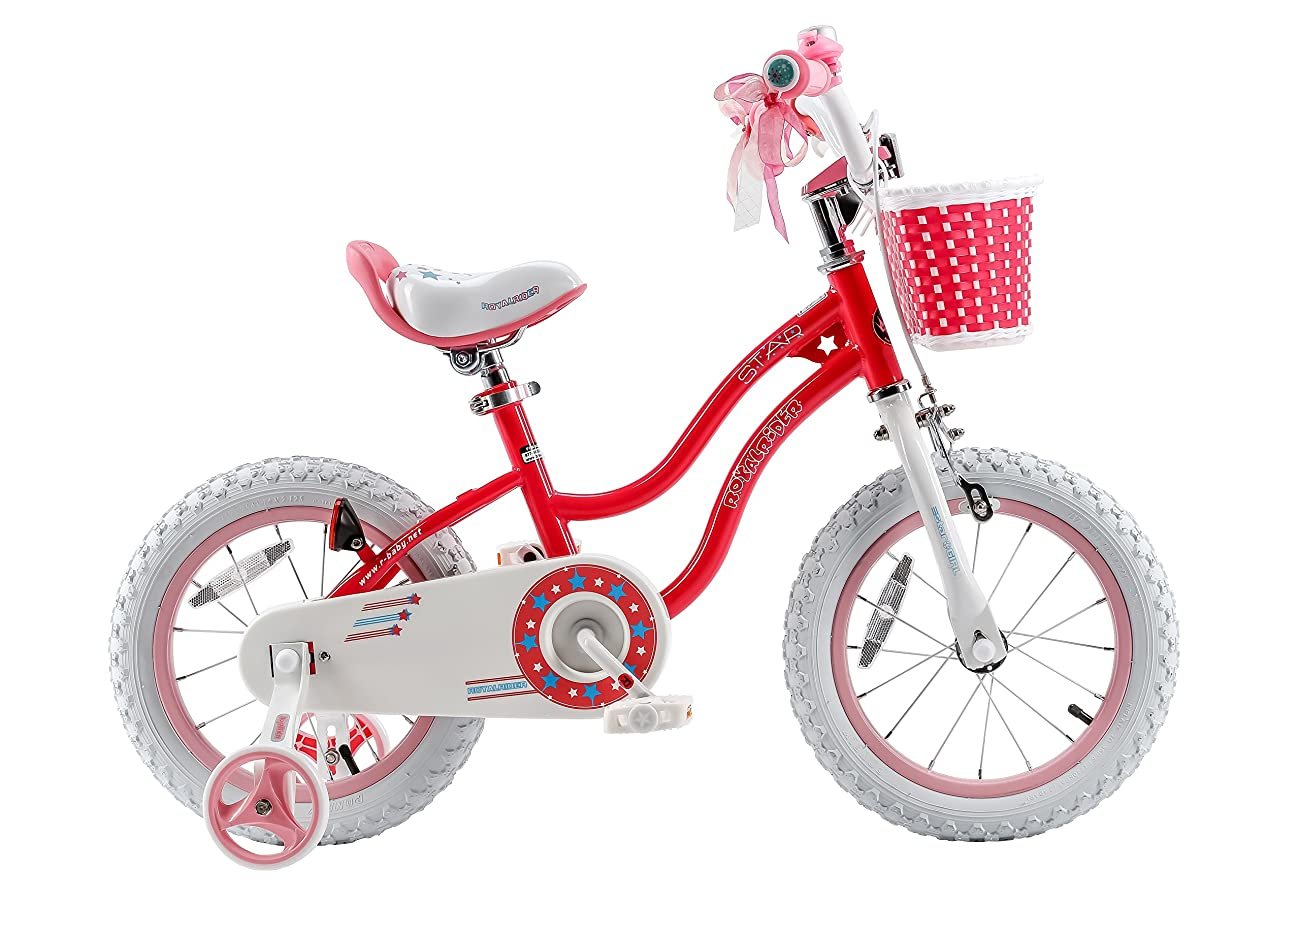 RoyalBaby Stargirl Girl's Bike with Training Wheels and Basket, Perfect Gift for Kids. 12 Inch, 14 Inch, 16 Inch, Blue / Pink 0